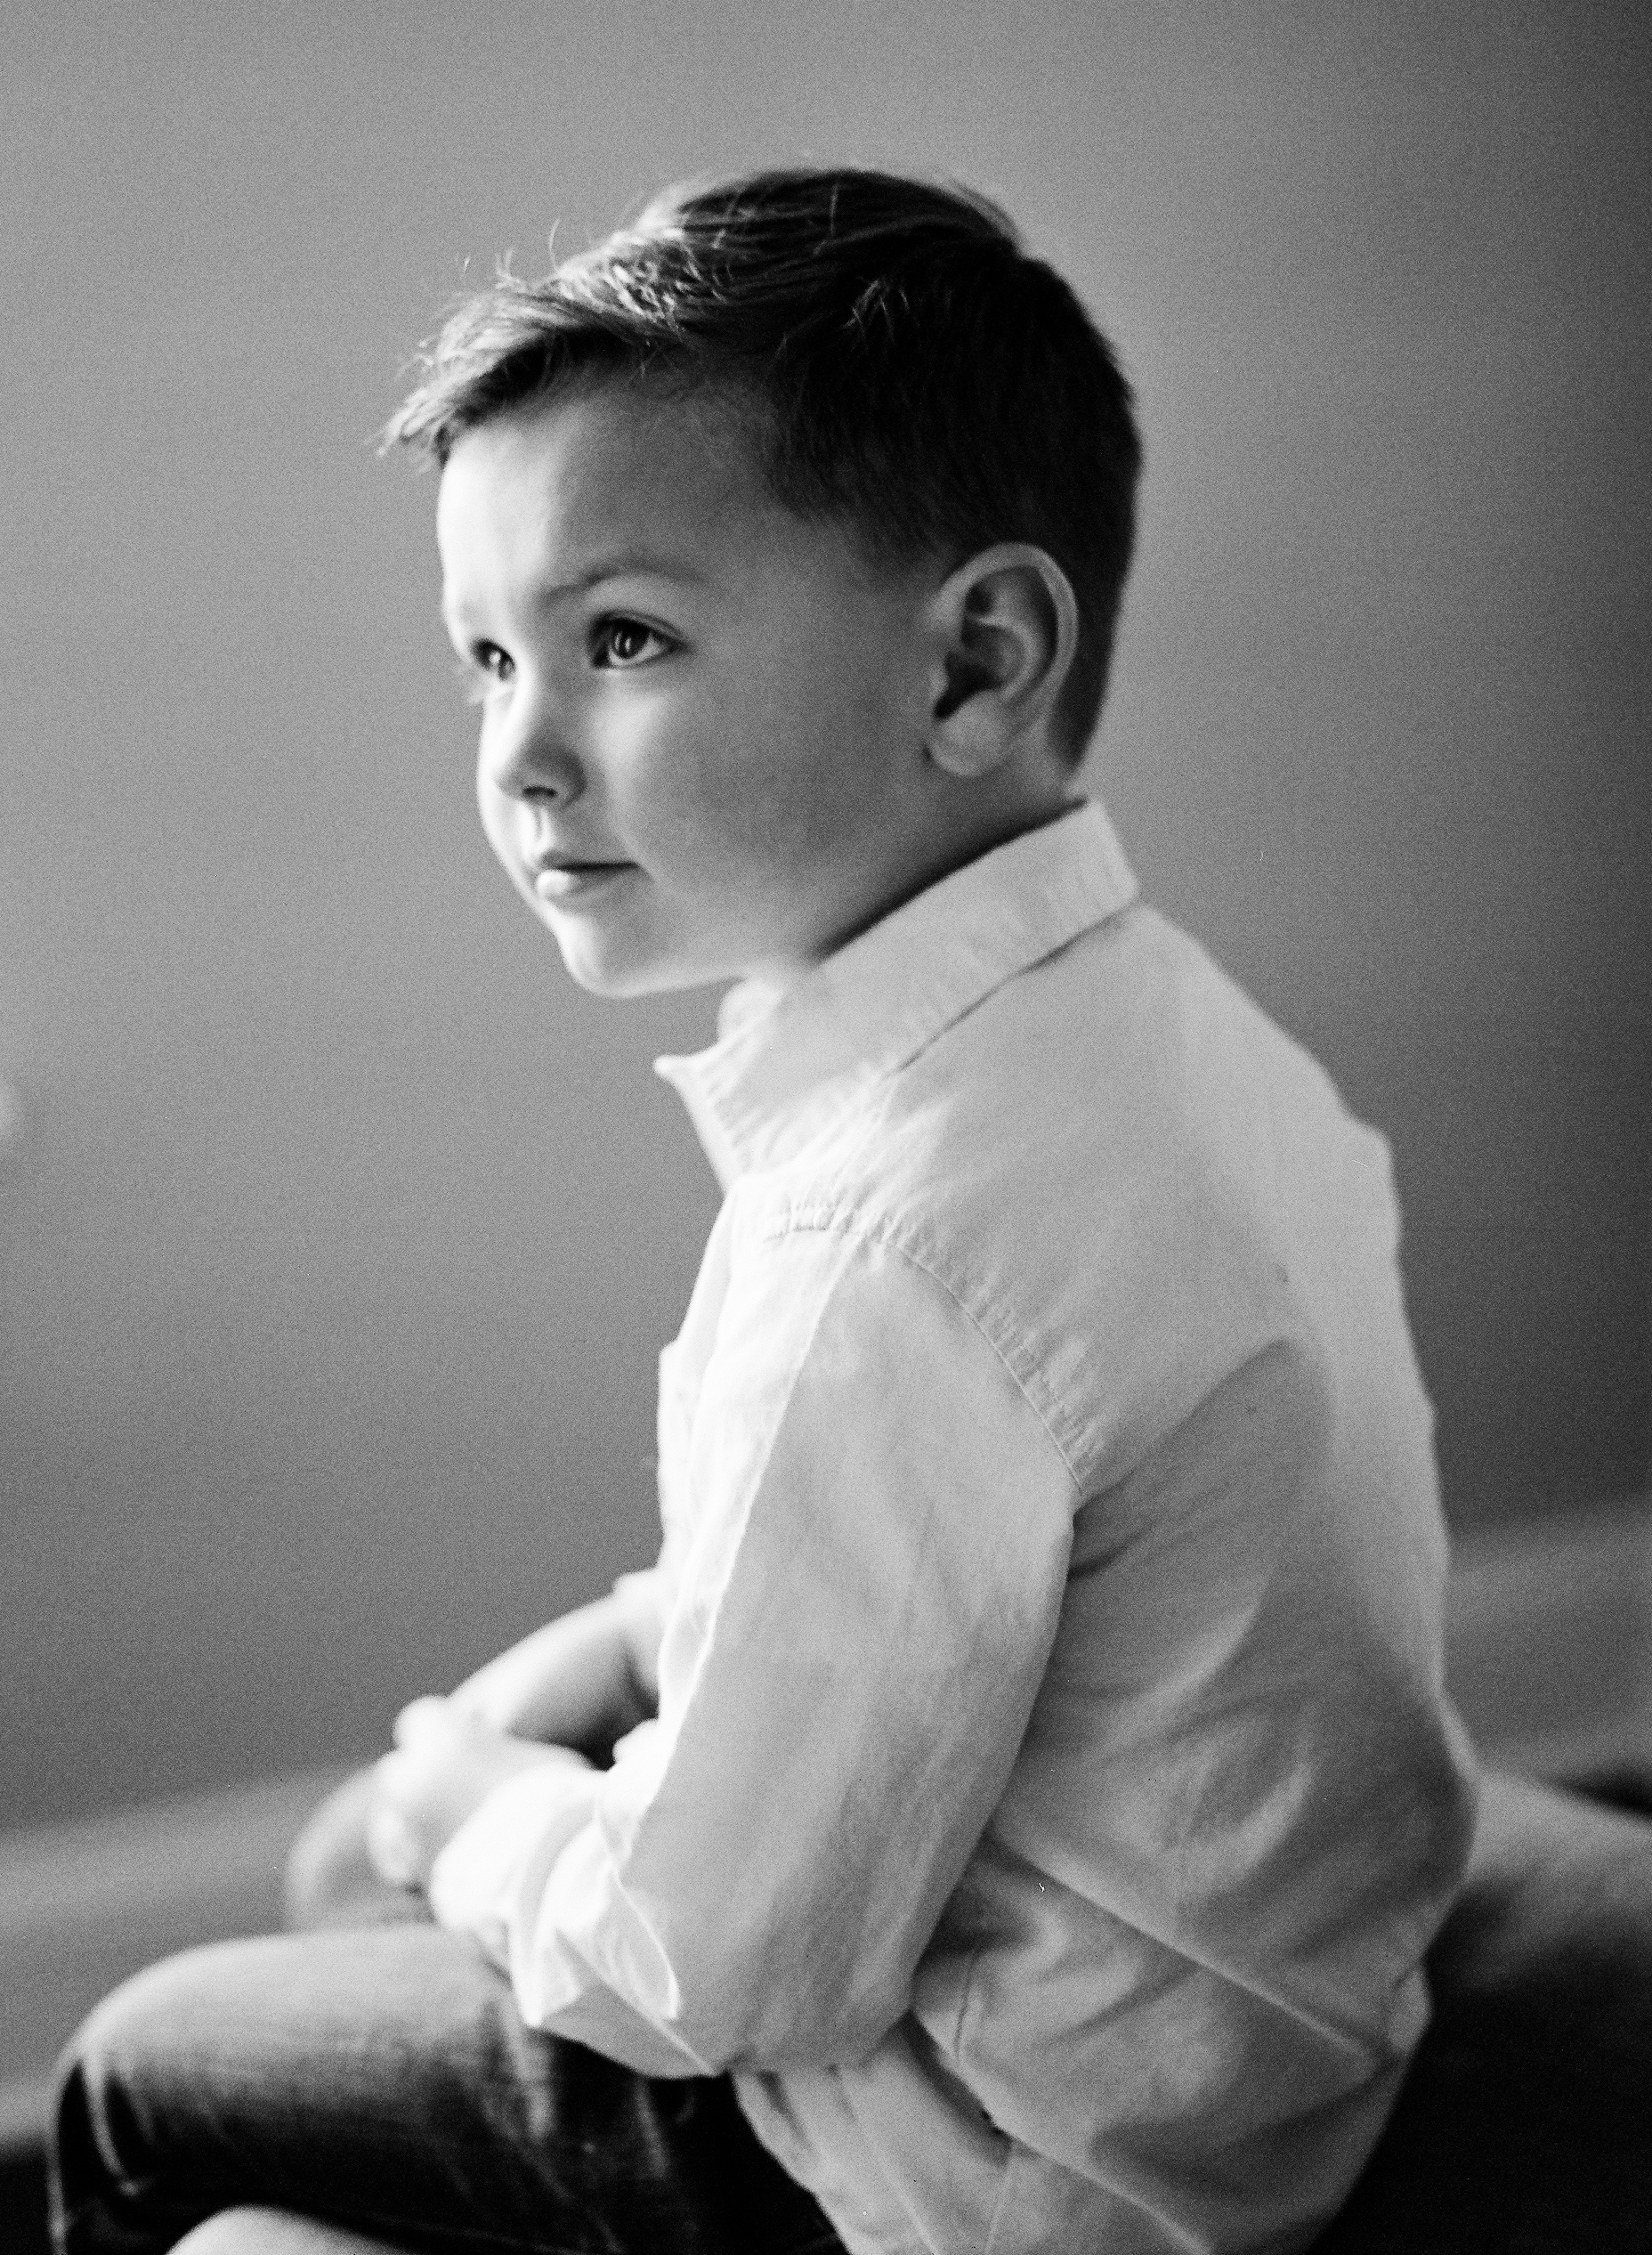 nashville-franklin-blackandwhite-childrens-portraiture-26.JPG